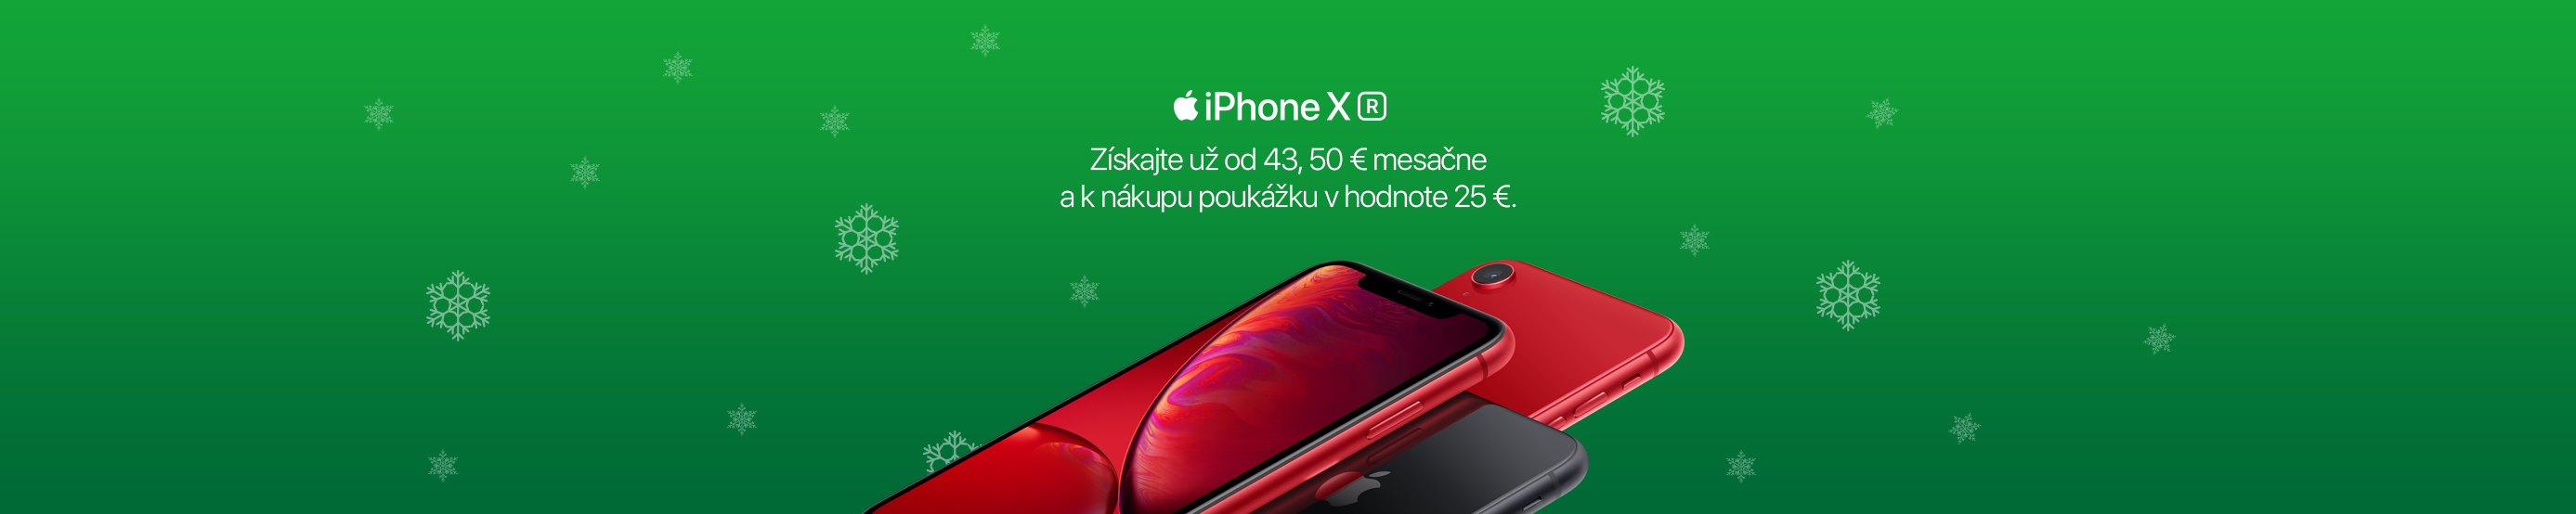 iPhone XR už od 43,50 €